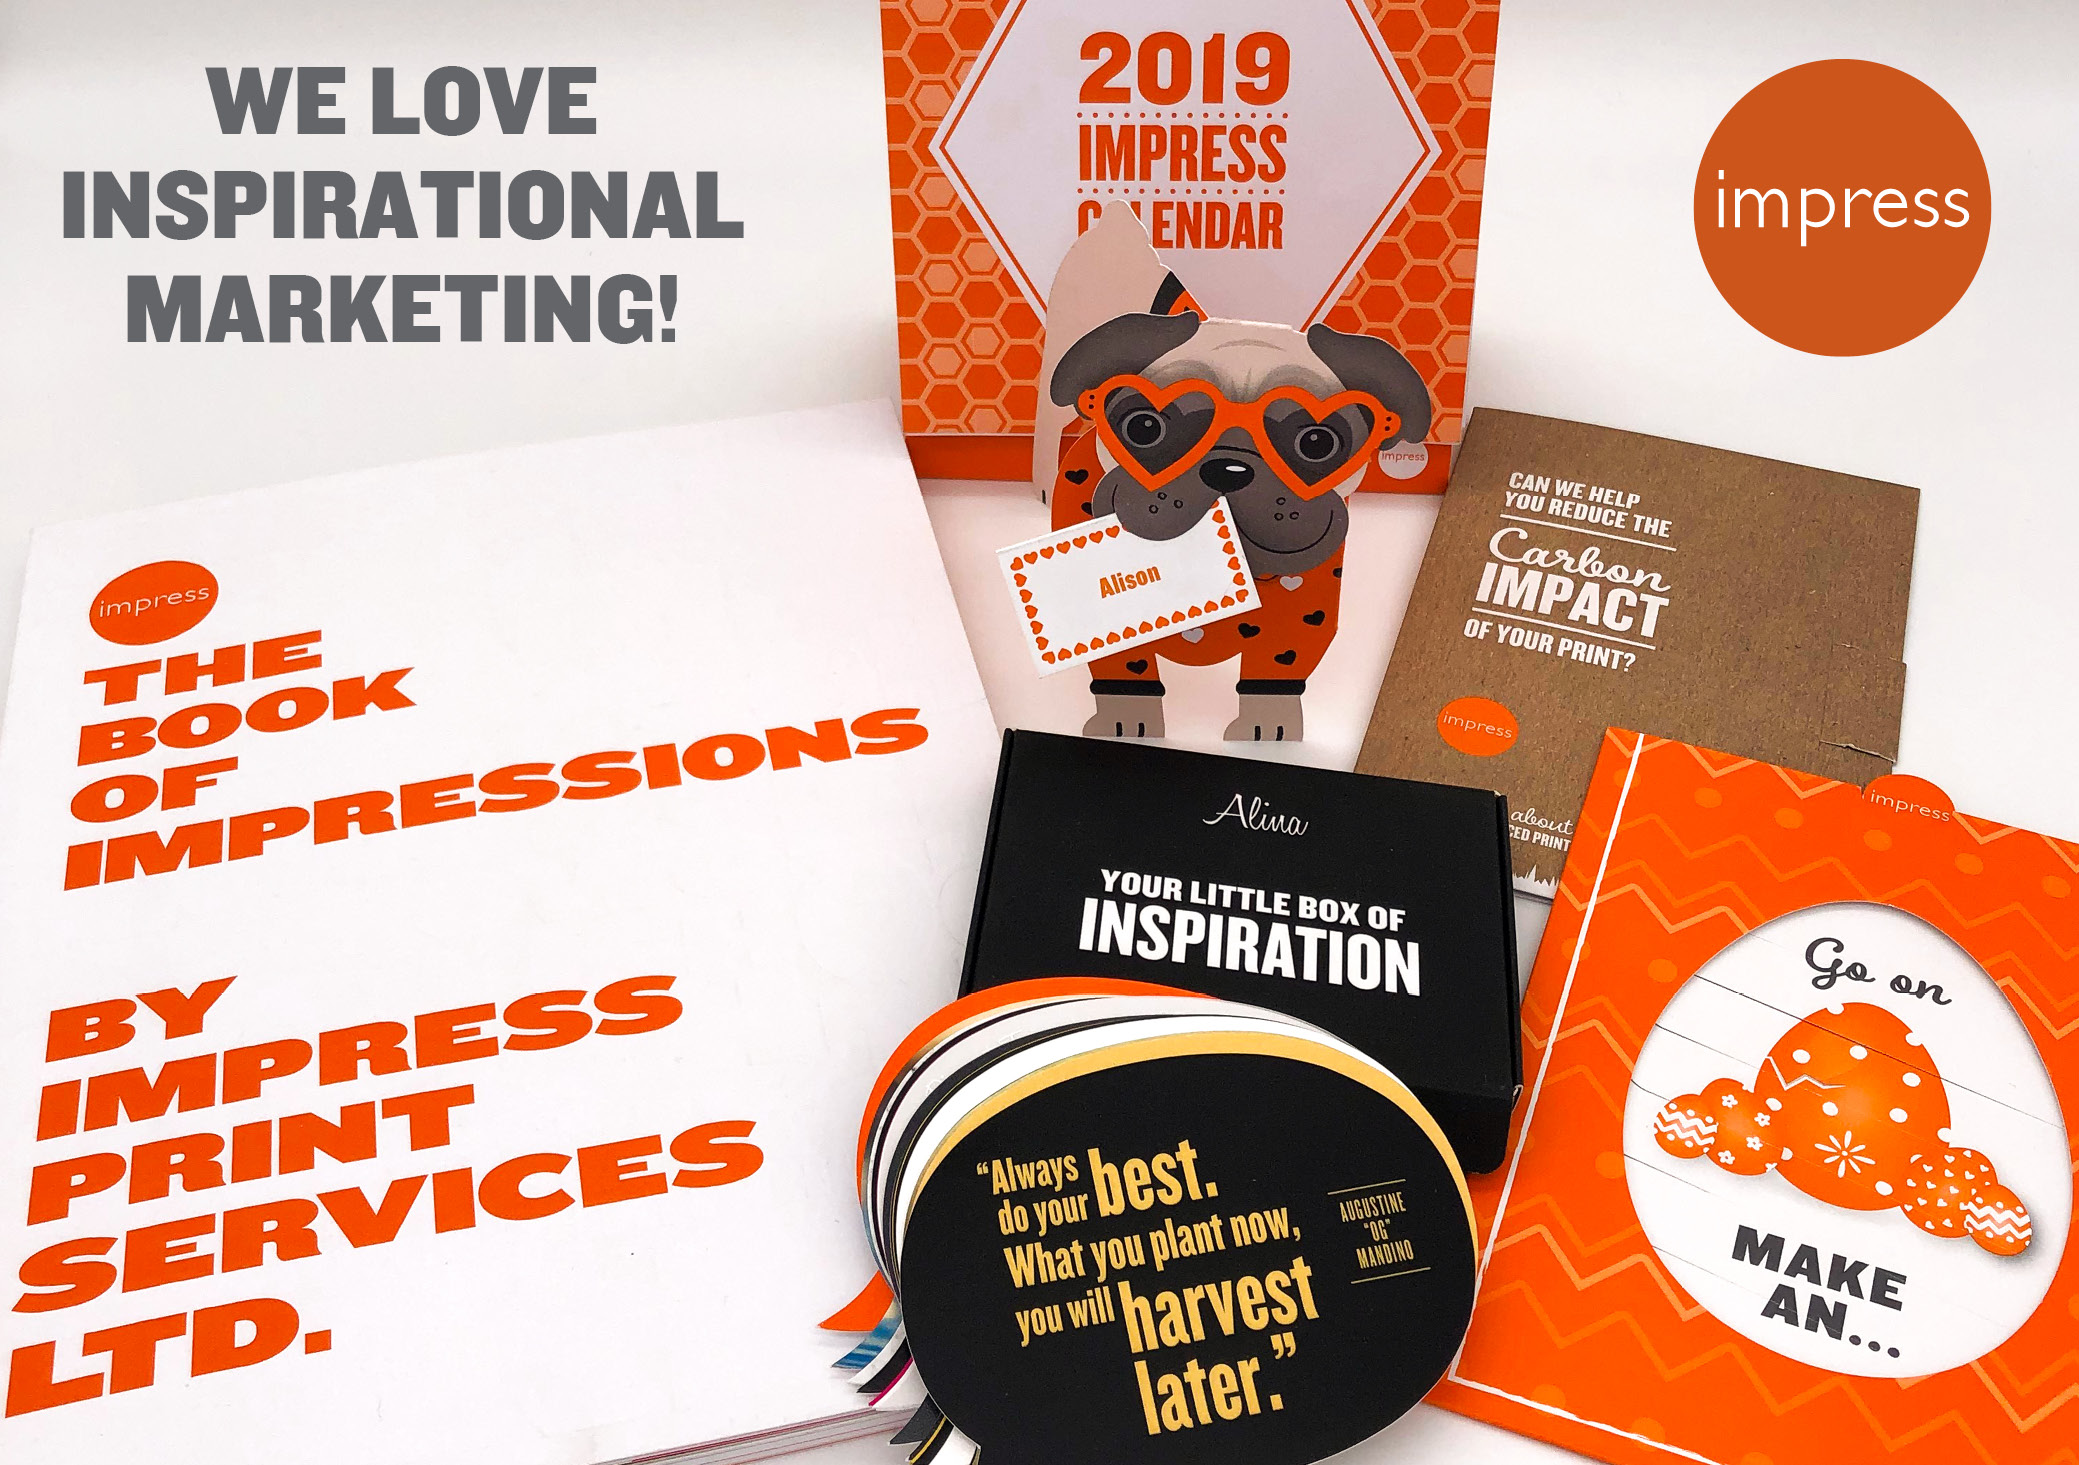 Impress Print Services Marketing Campaign 2019